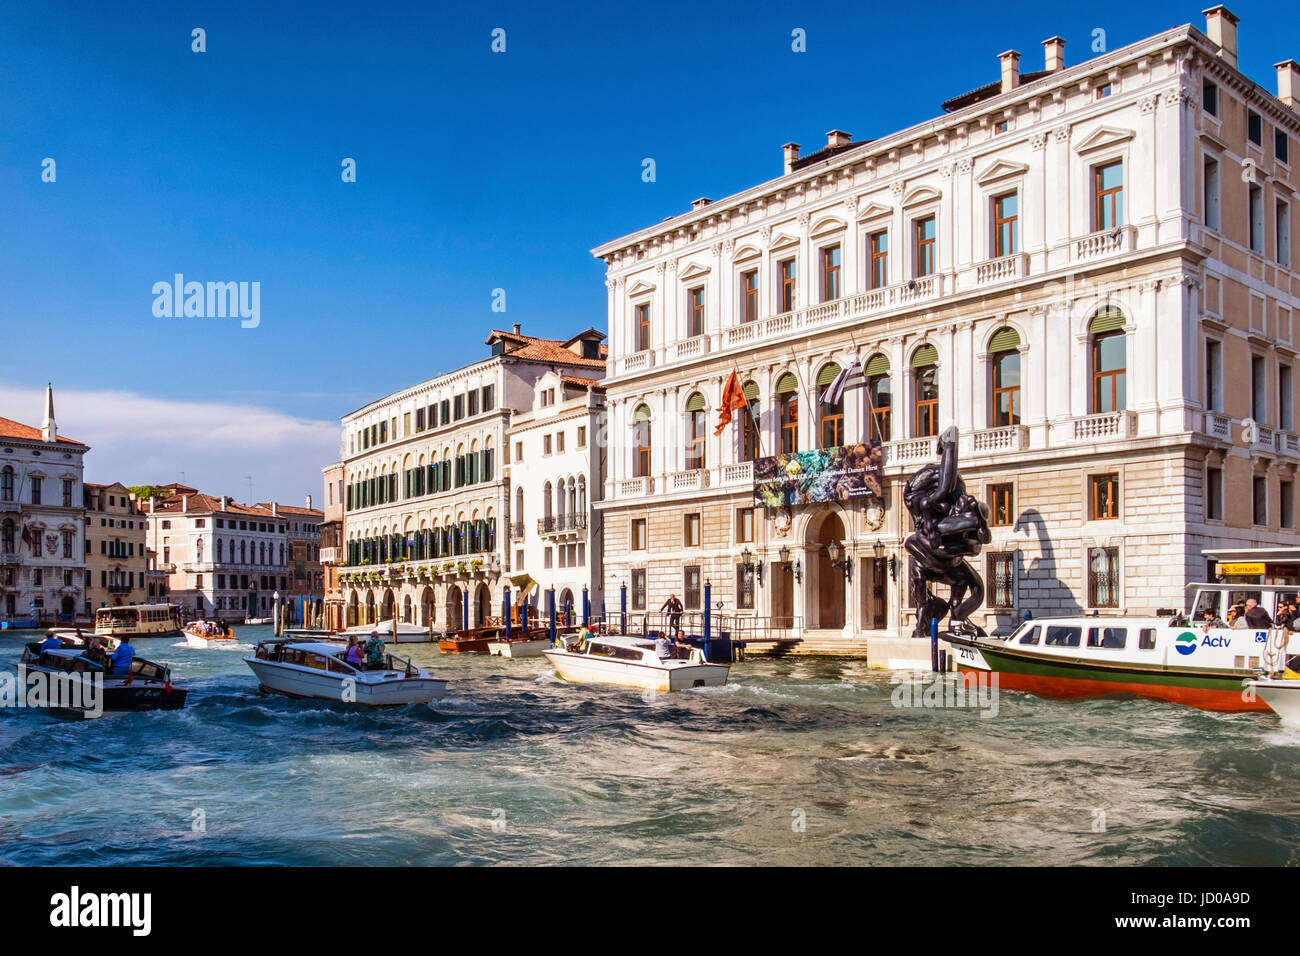 Venice,Italy. Water taxis race past the Palazzo Grassi Palace on the Grand canal shows British artist,Damien Hirst - Stock Image